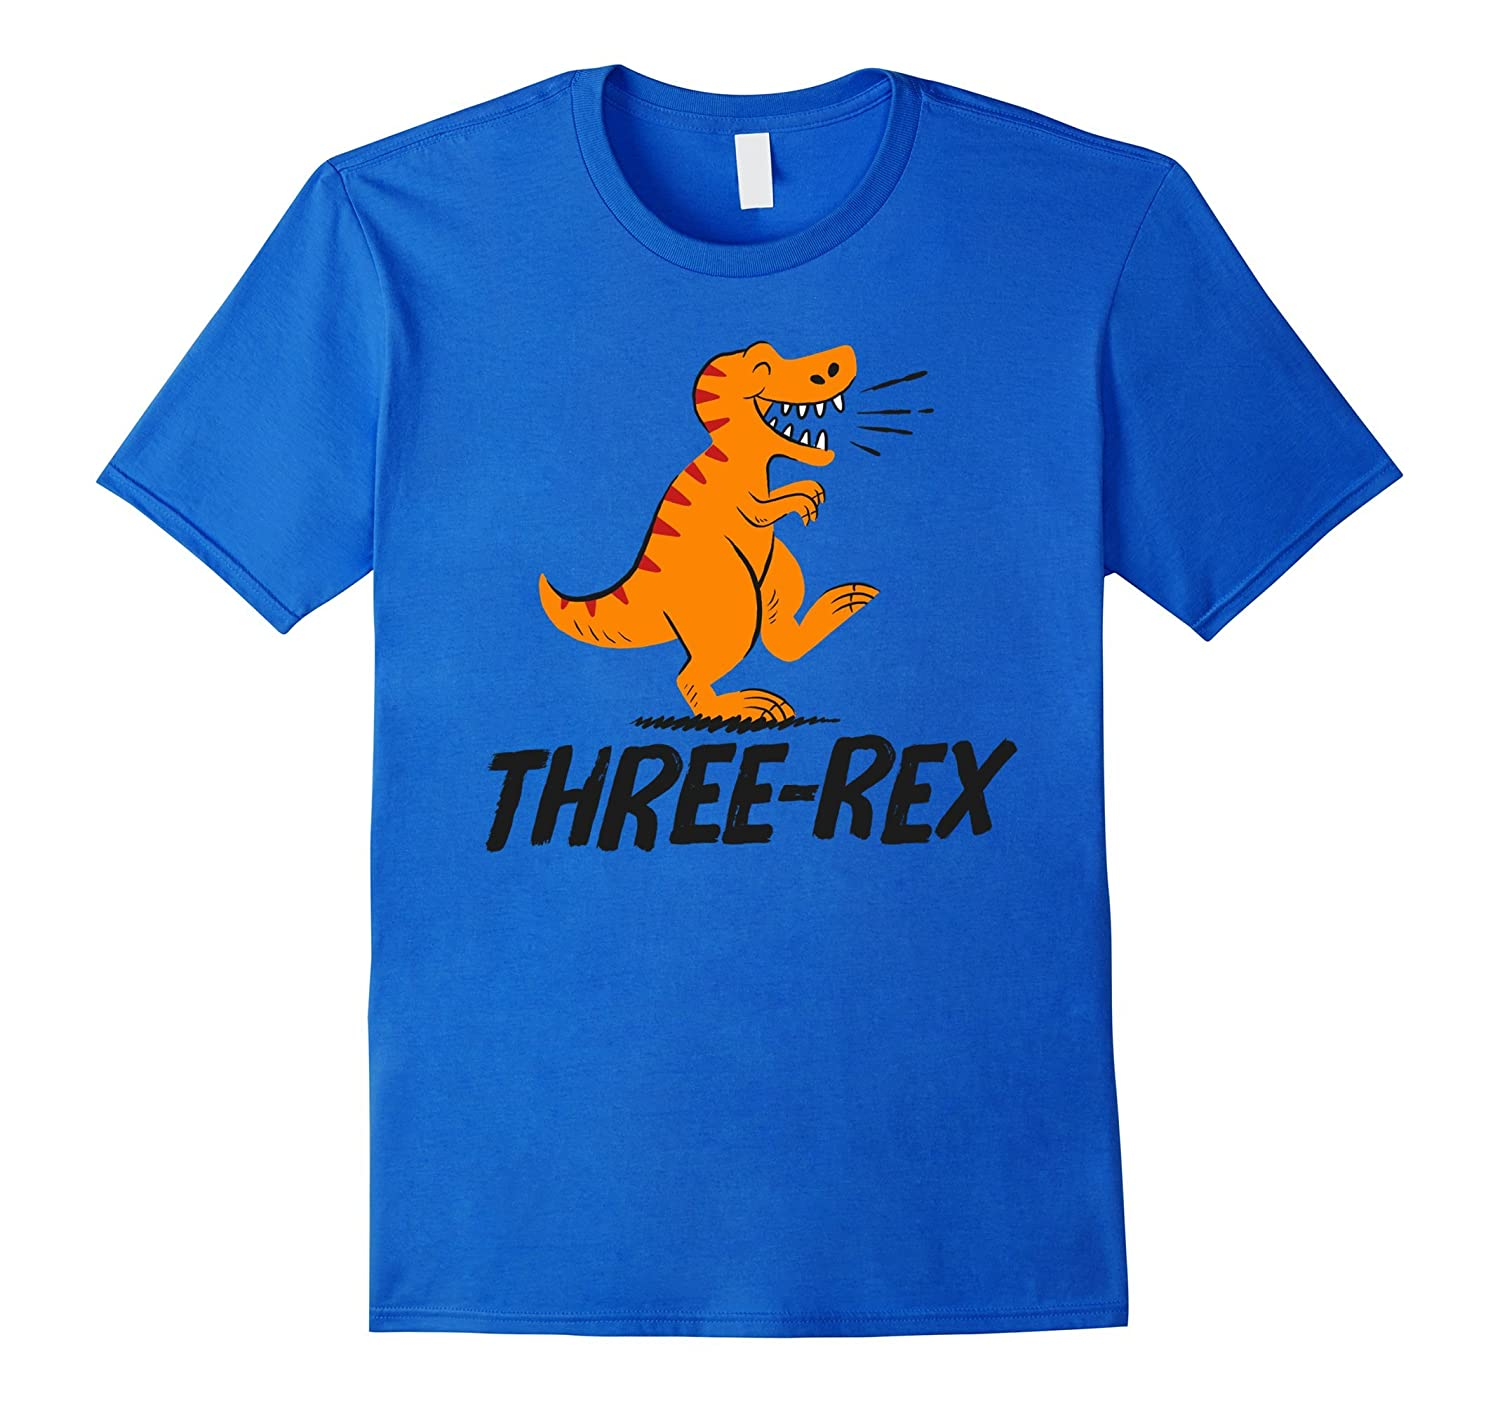 Three Rex Third 3rd Birthday Kids Dinosaur Themed T Shirt CD